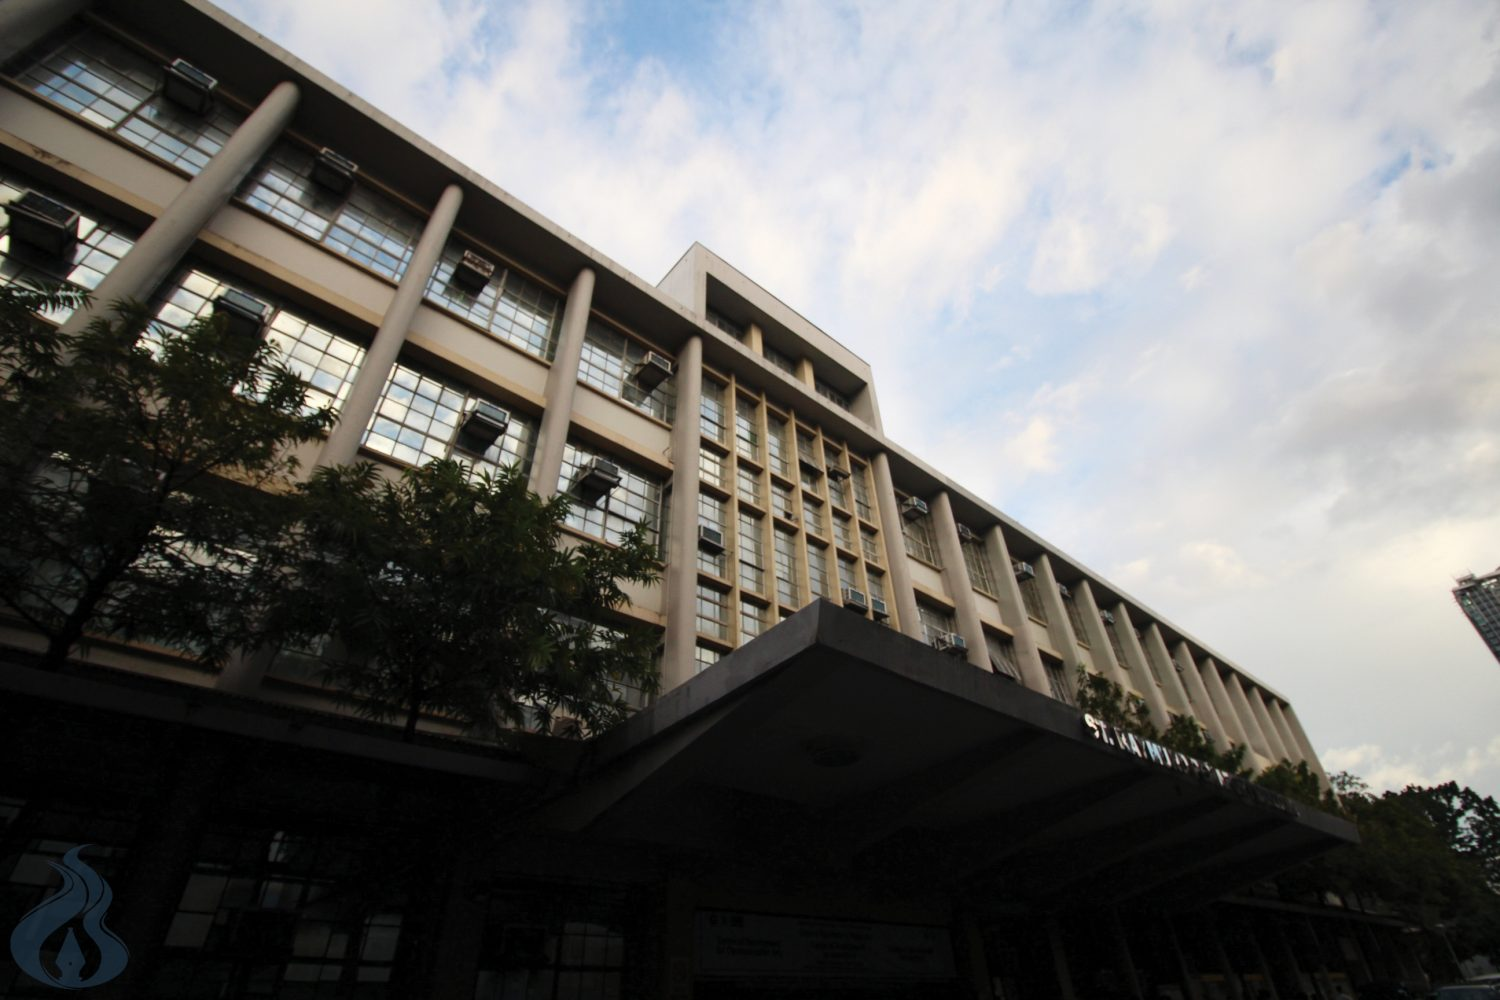 P1.2k breakdown to be released soon, says ABSC president